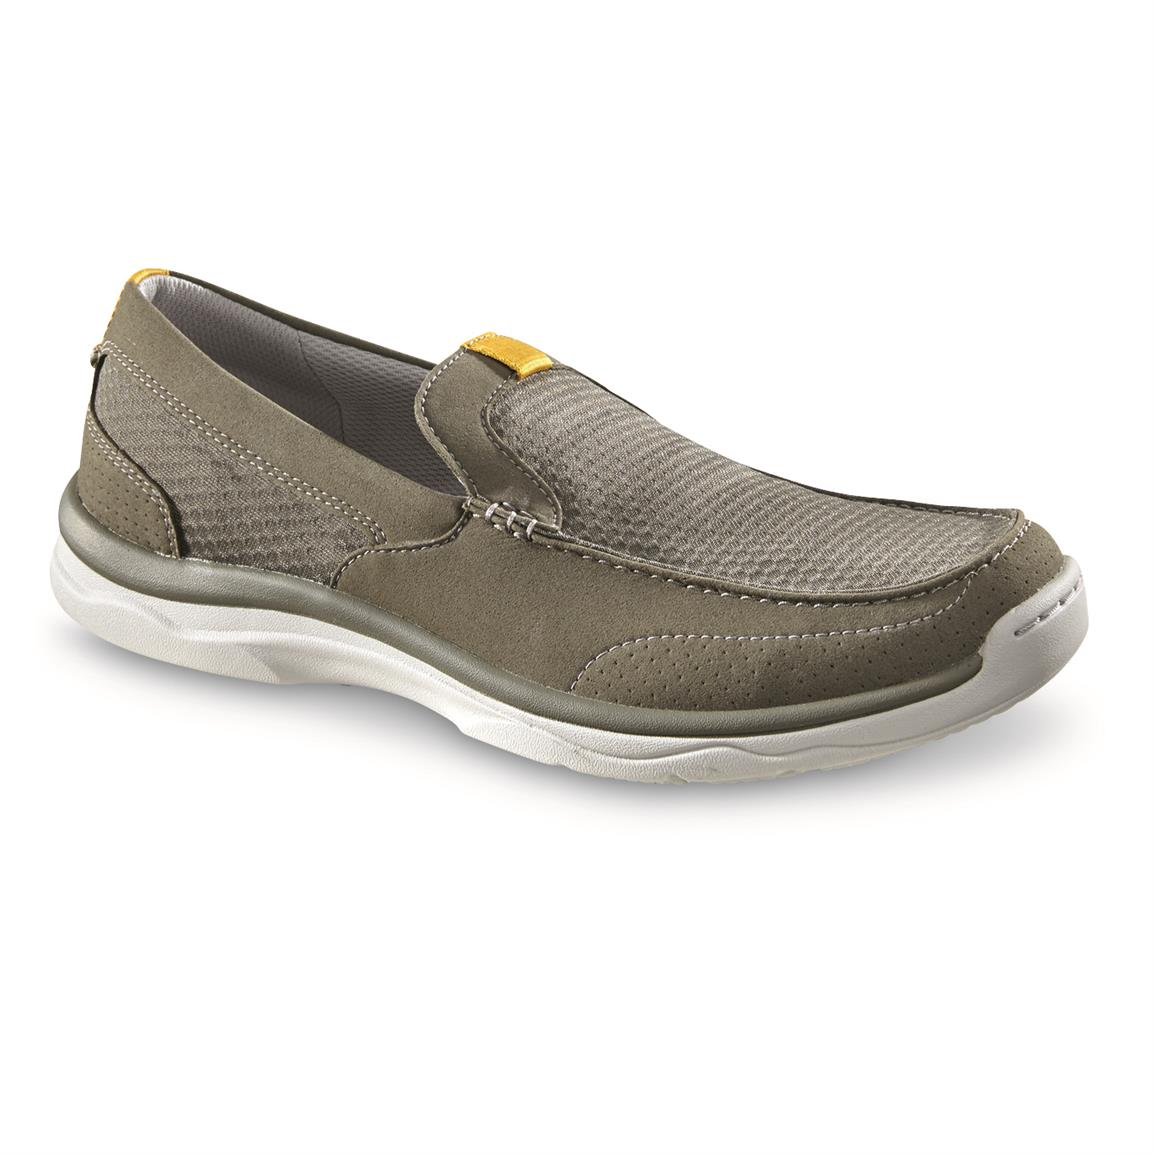 Clarks Men's Cloudsteppers Marus Step Shoes, Olive